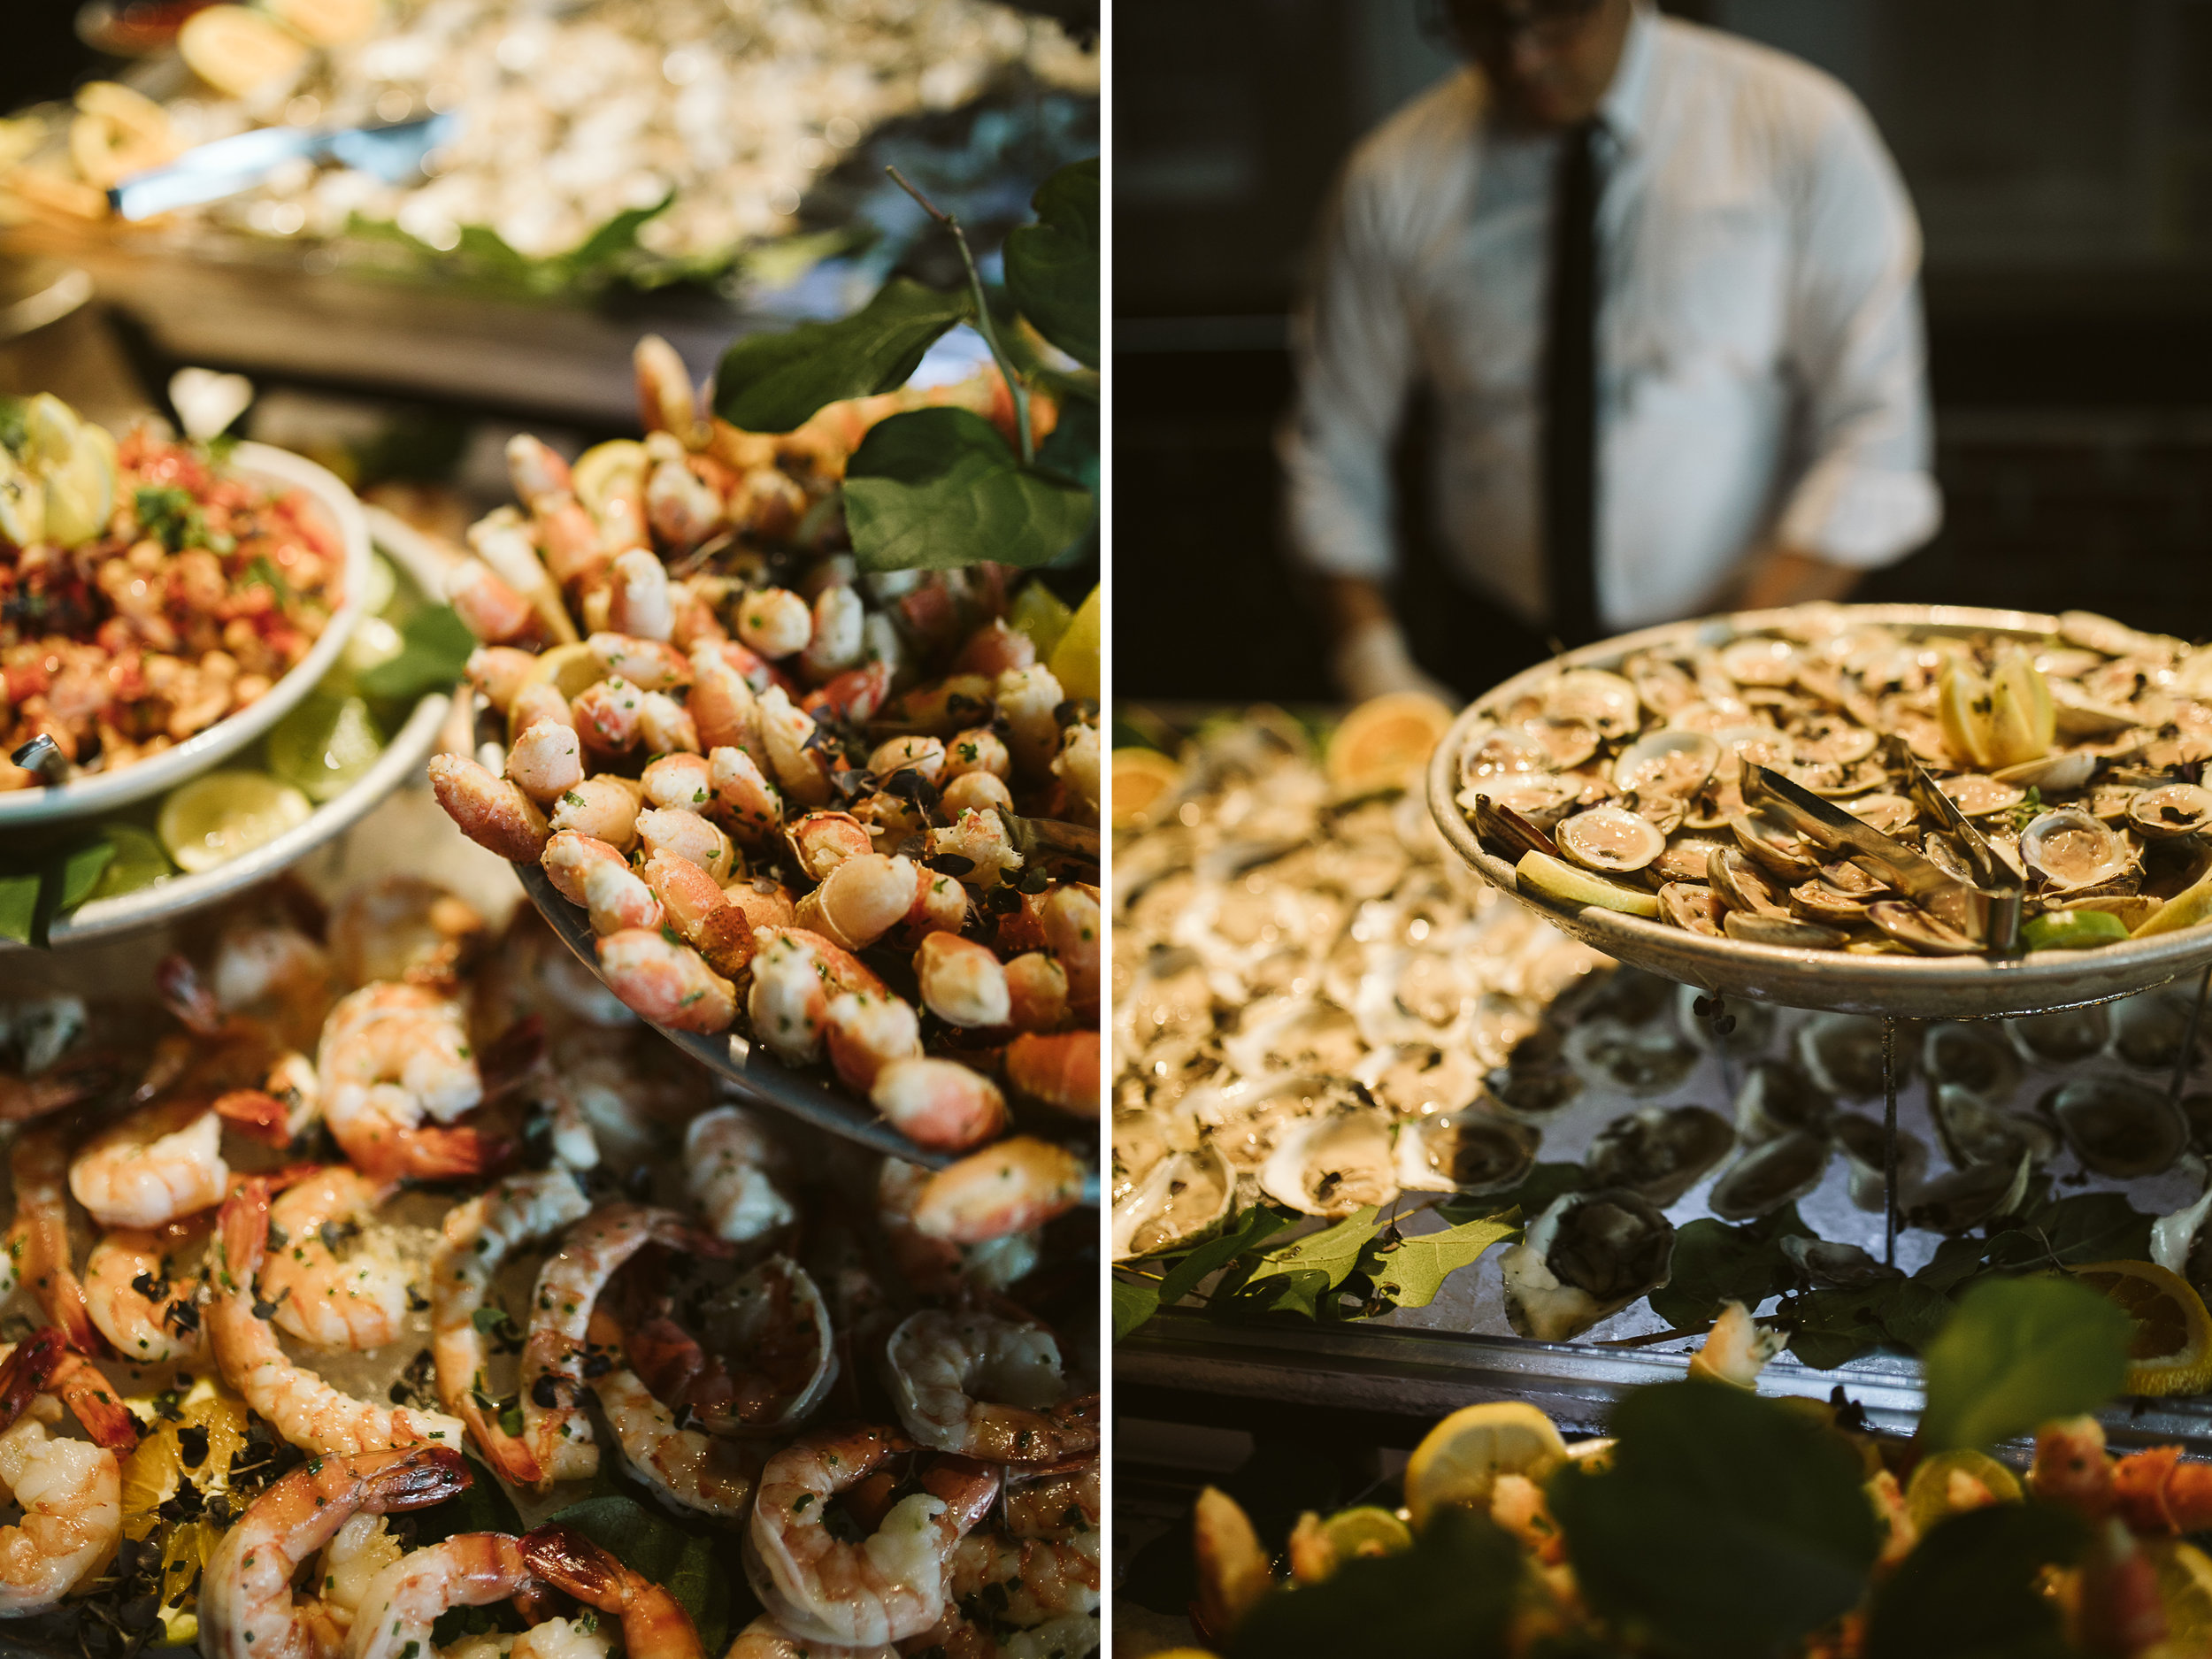 The reception seafood spread at this Battello Wedding in Jersey City, NJ